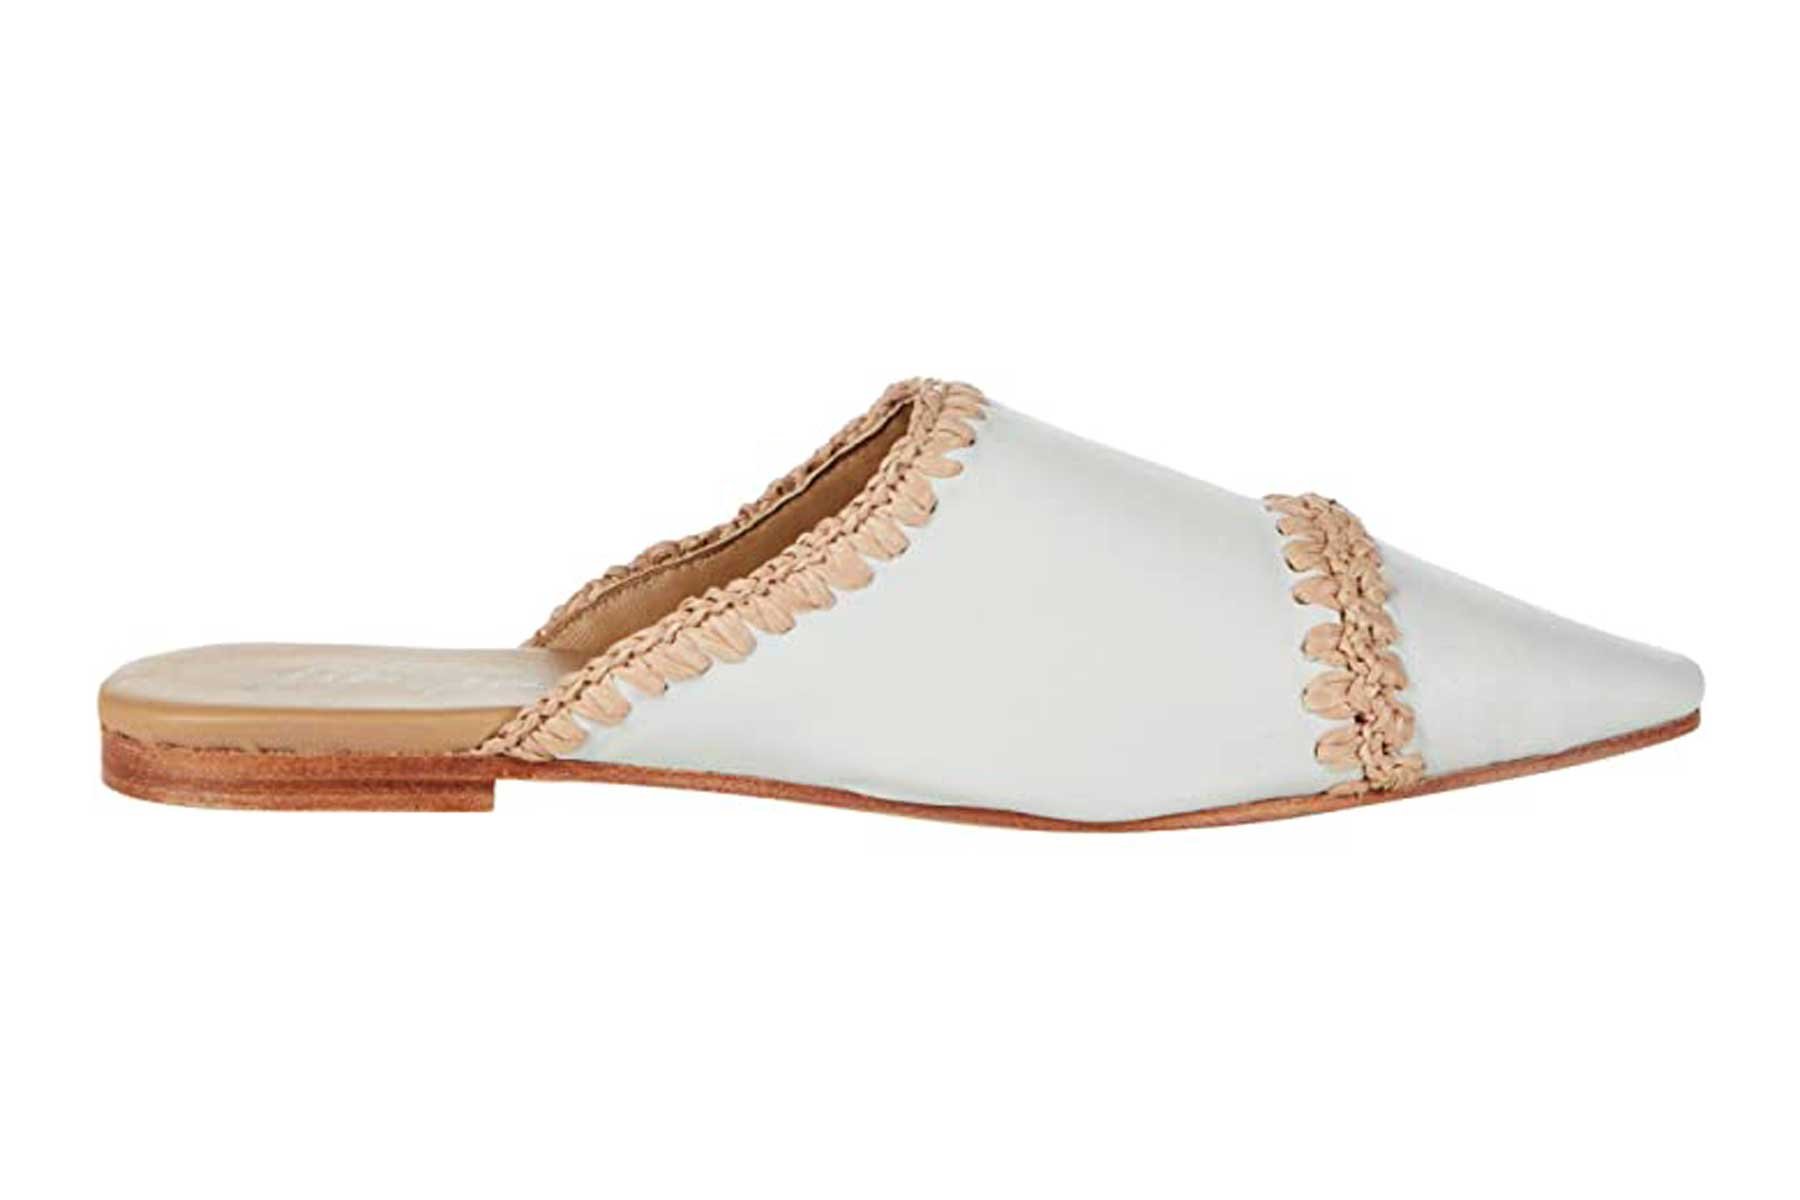 Free People San Marino slide sandals